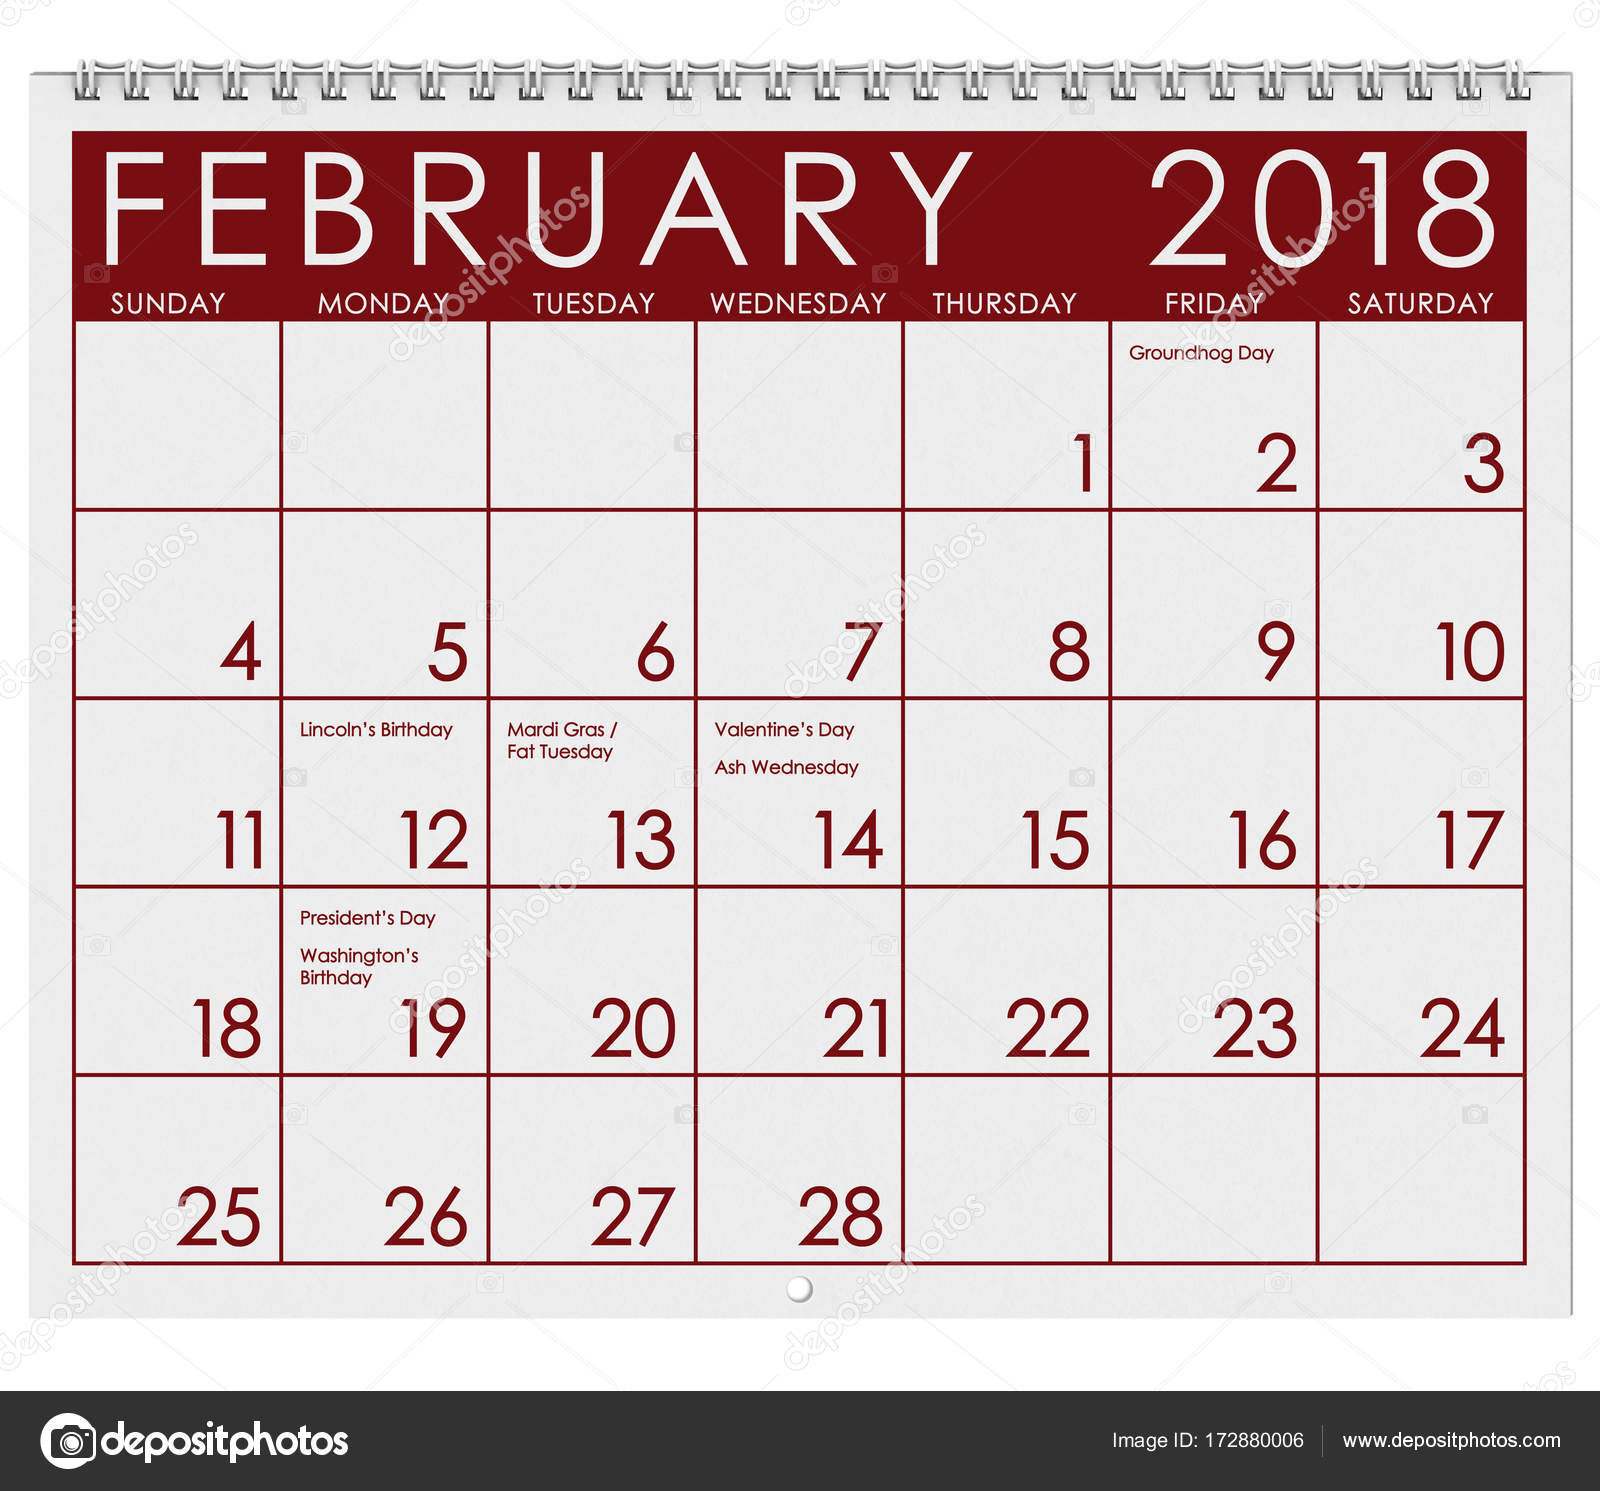 2018 Calendar Month Of February With Valentine S Day Stock Photo